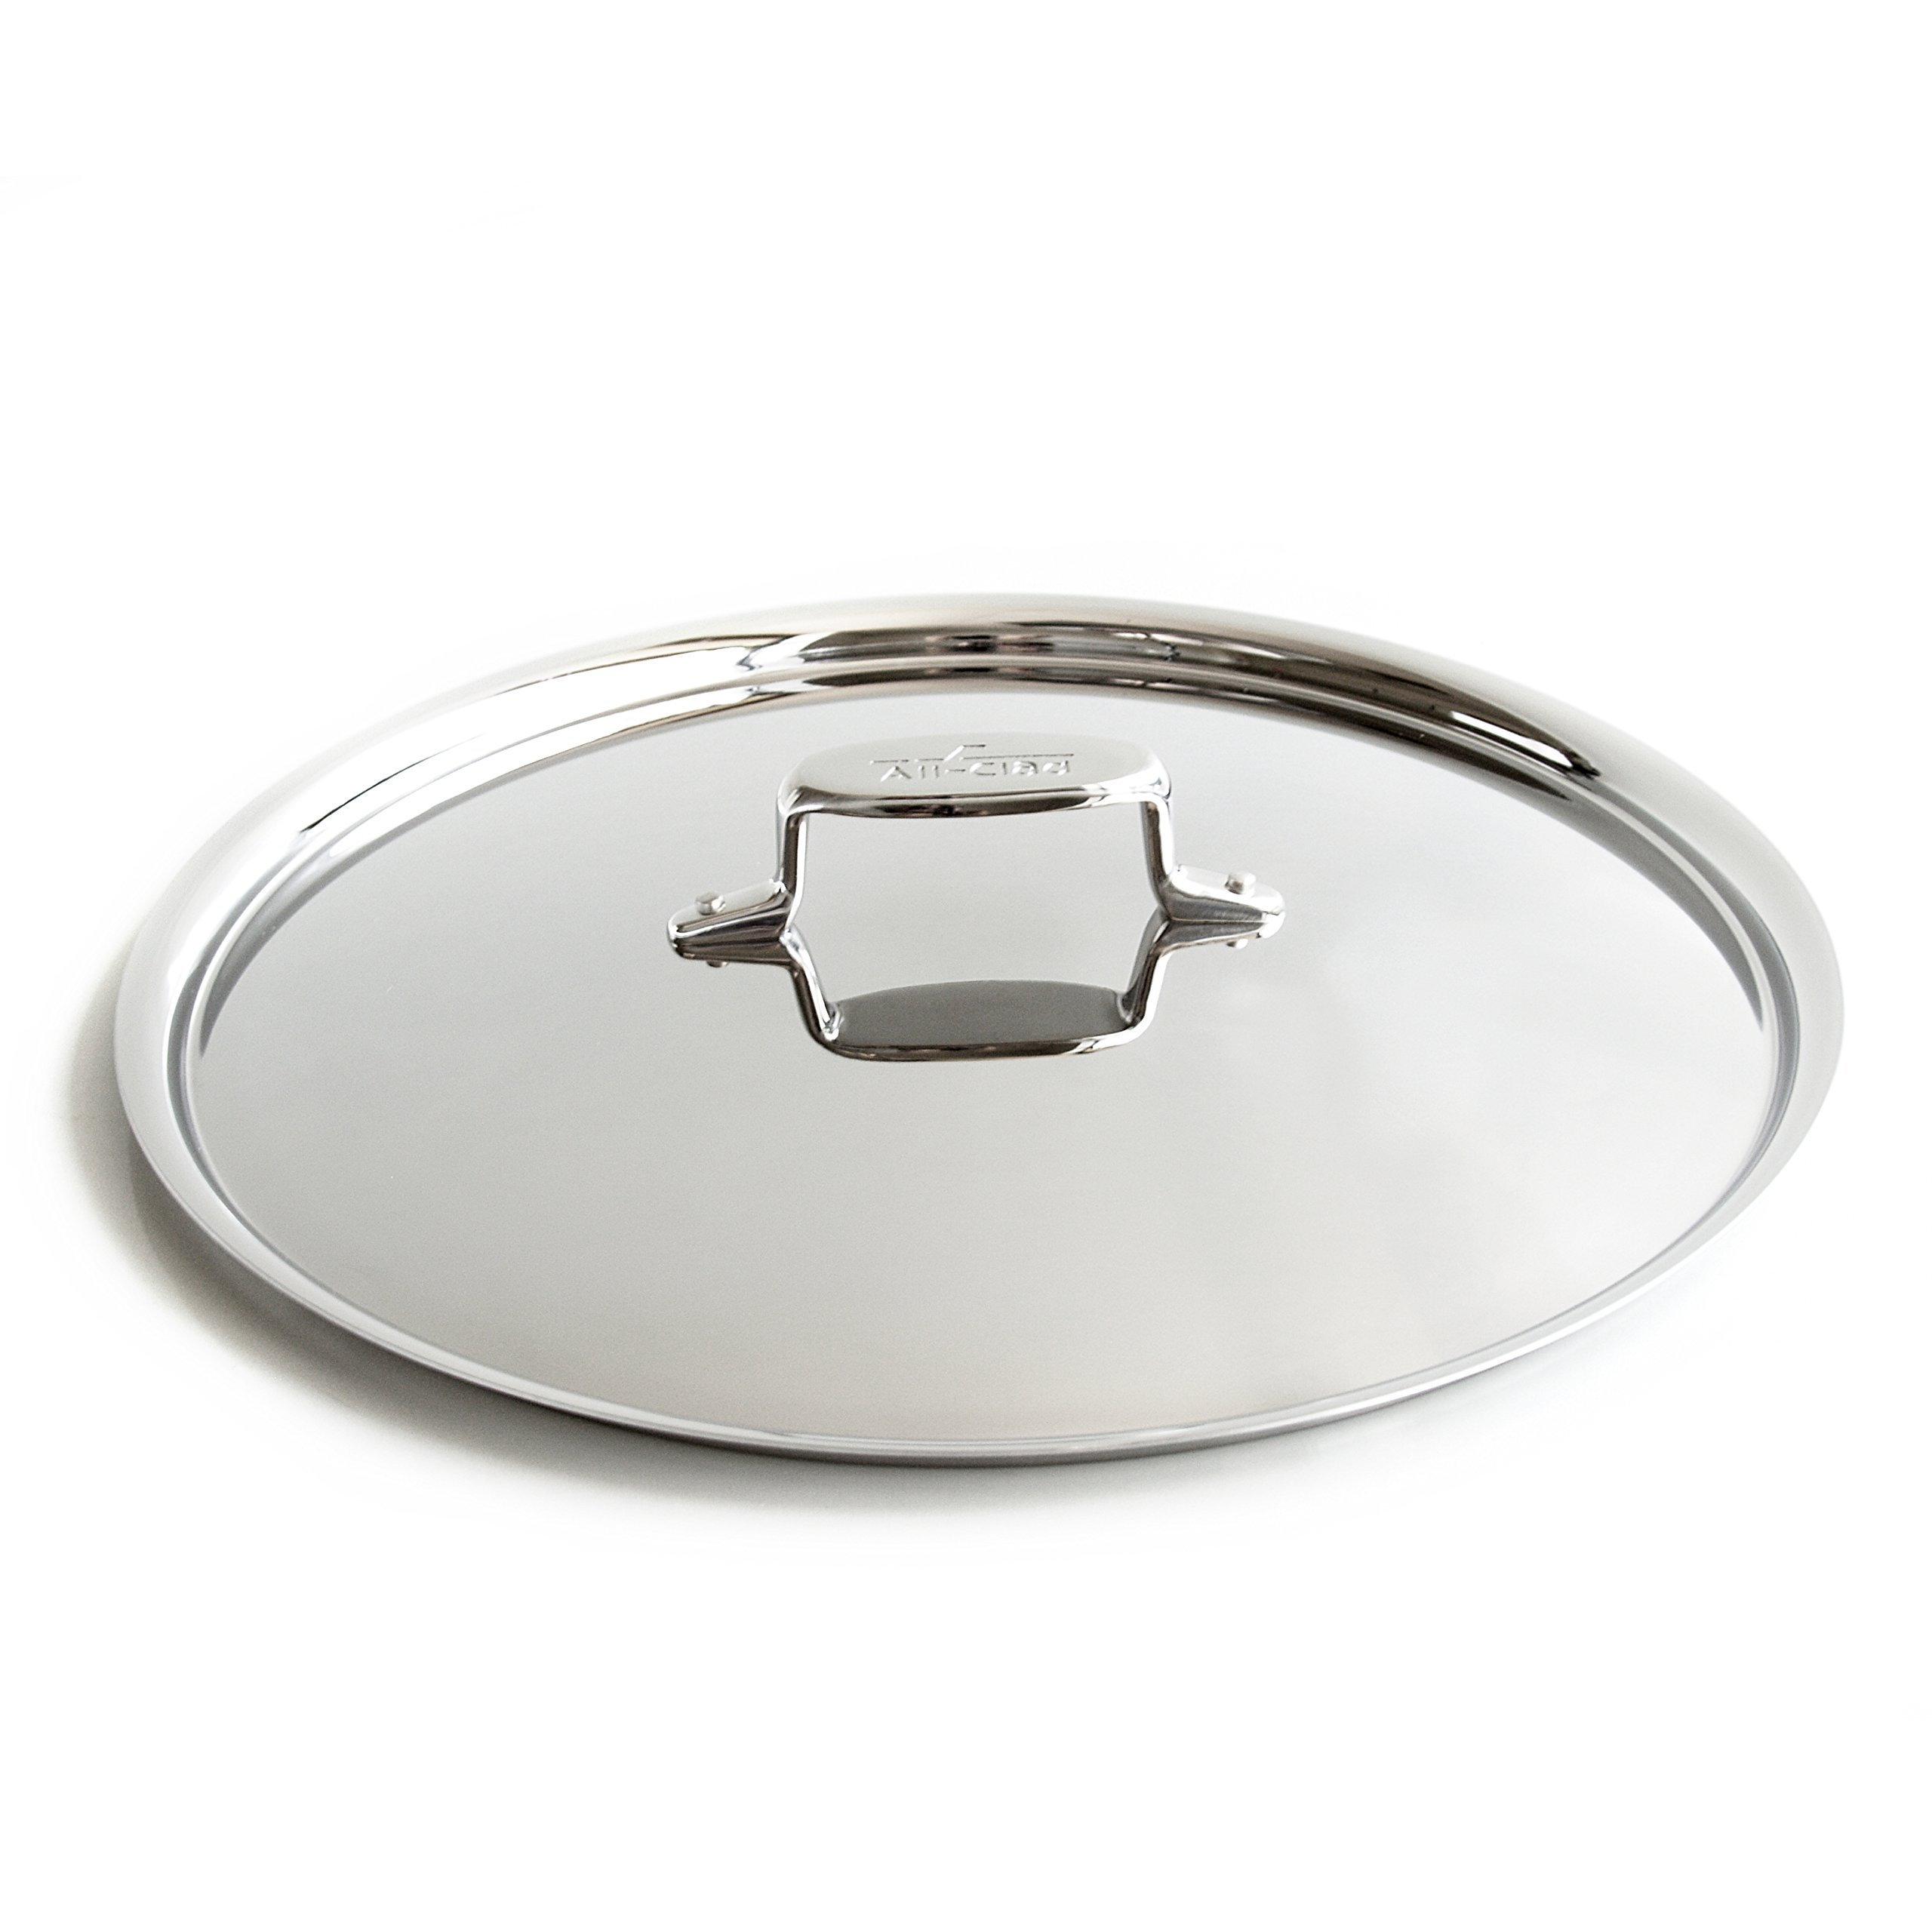 All-Clad D5 Brushed Stainless Steel Saute and French Skillet Lid, 13 Inch by All-Clad (Image #1)